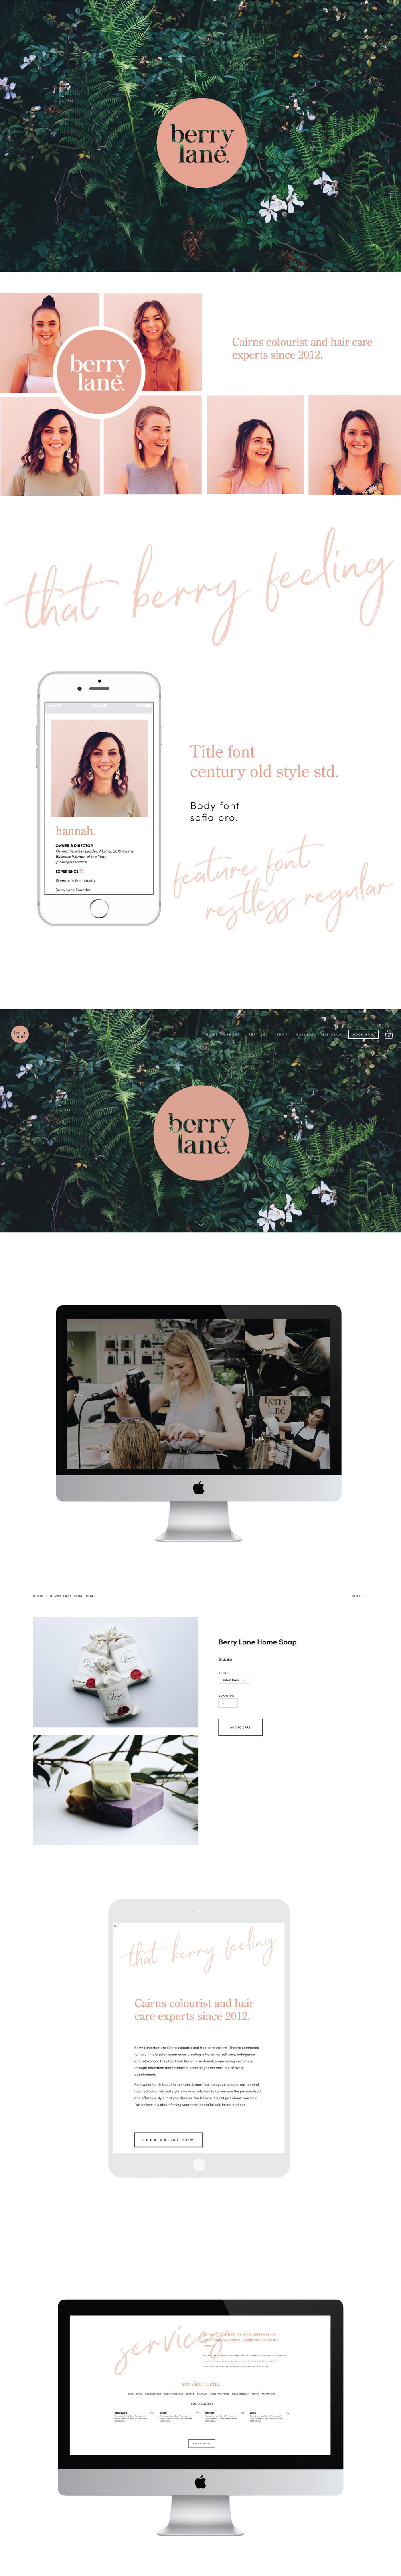 Imo-Creative---Branding-and-Website-Design---Berry-Lane-Hair---Squarespace.jpg